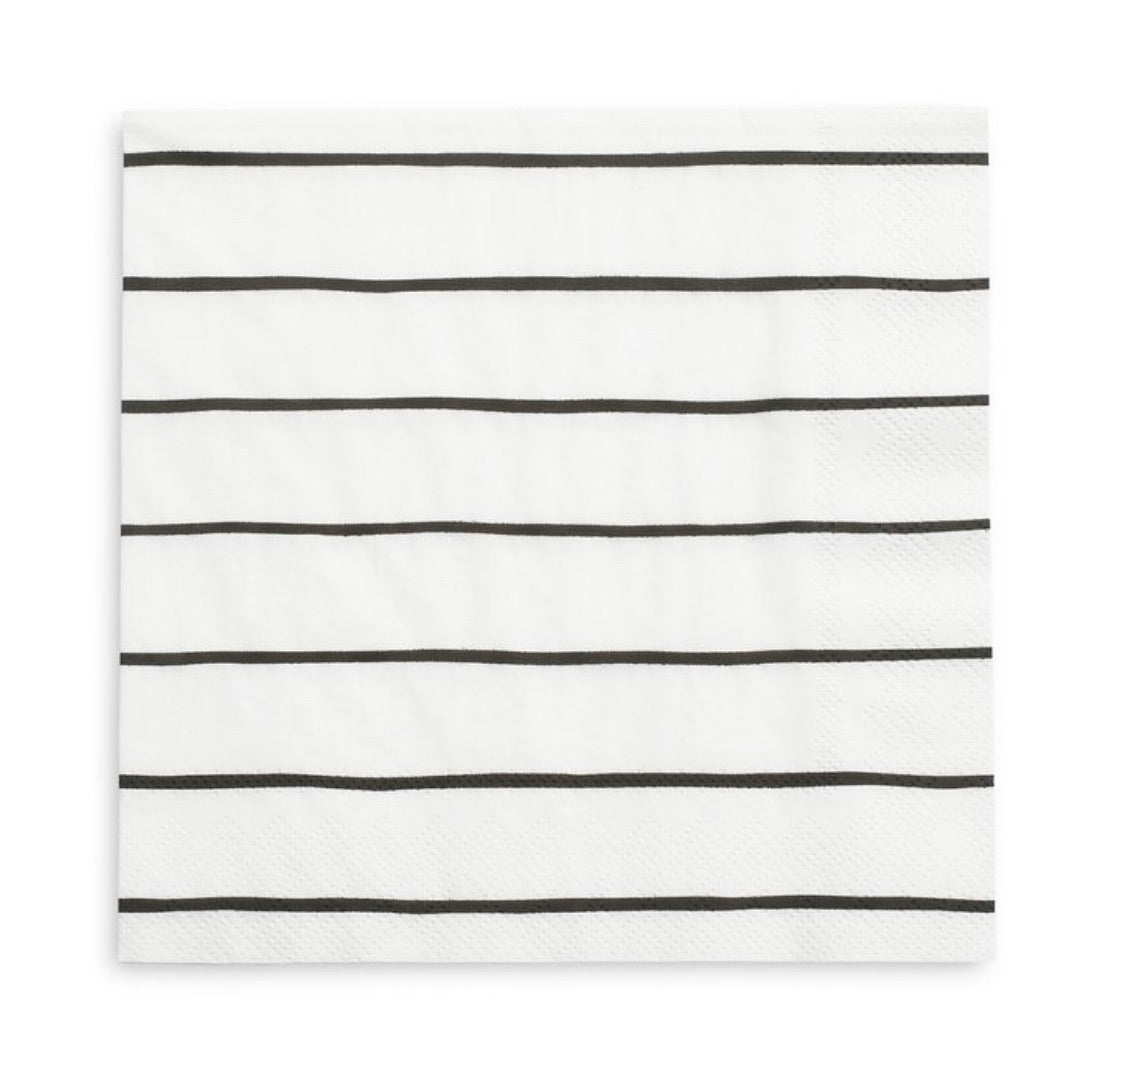 NAPKINS - LARGE DAYDREAM SOCIETY FRENCHIE STRIPES INK